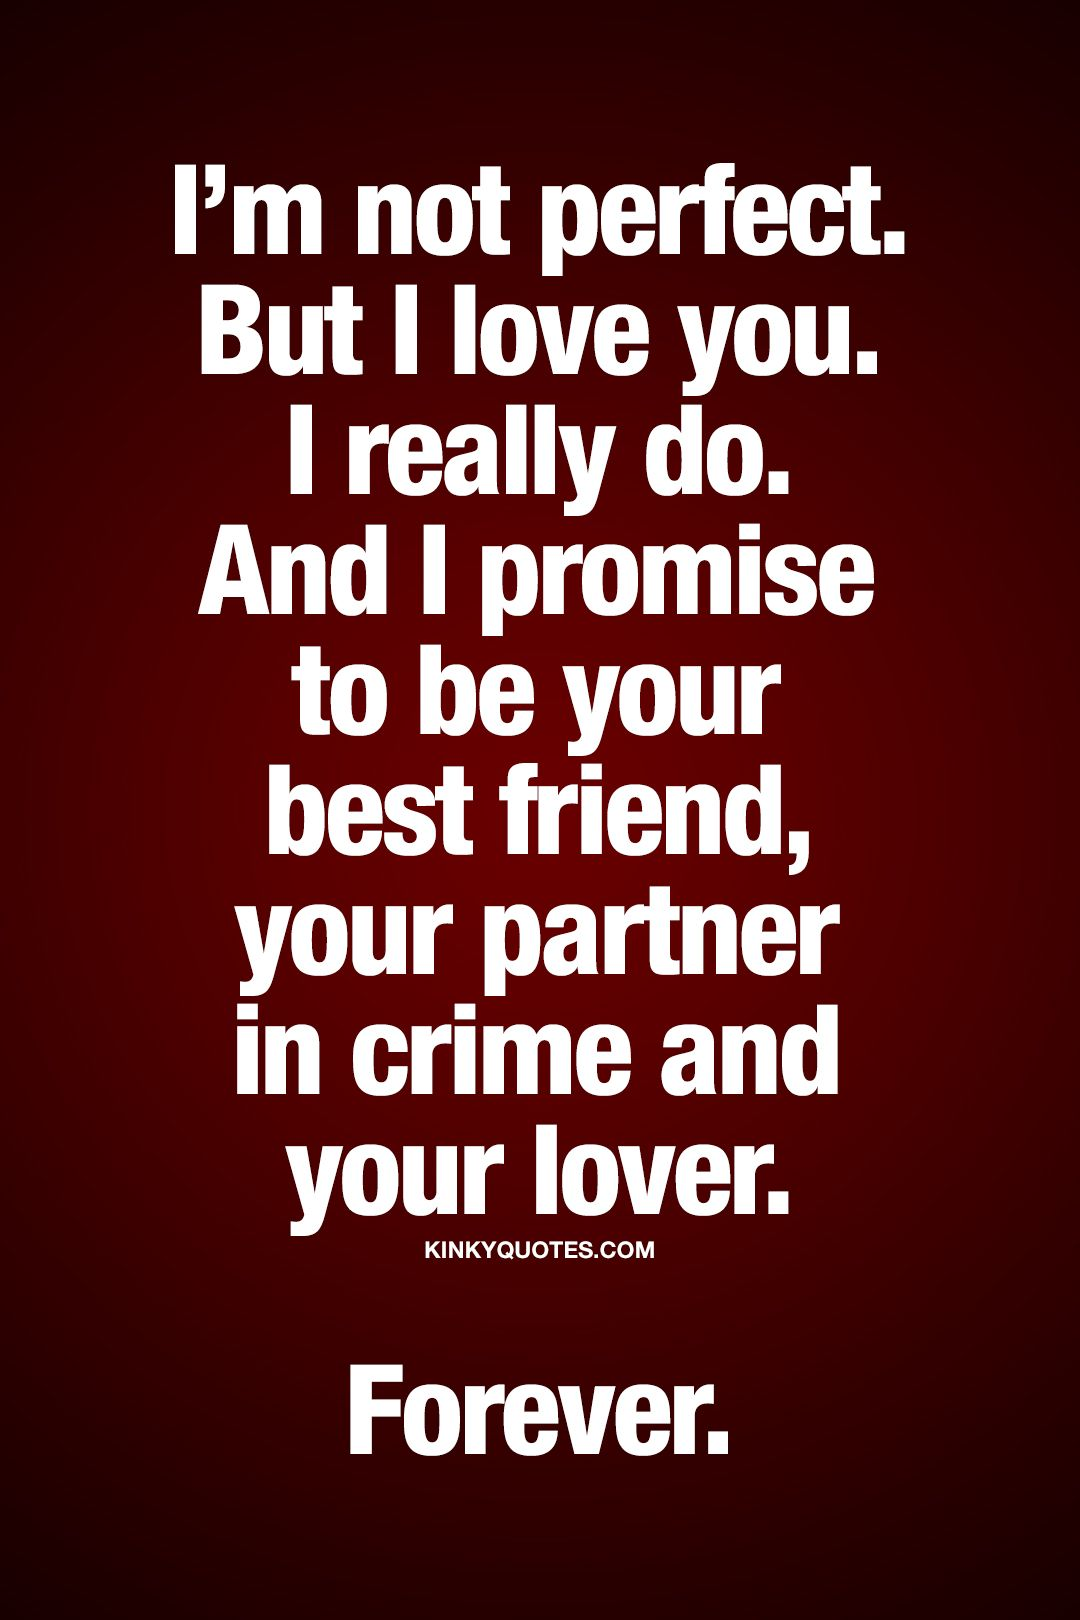 I love you relationship quotes